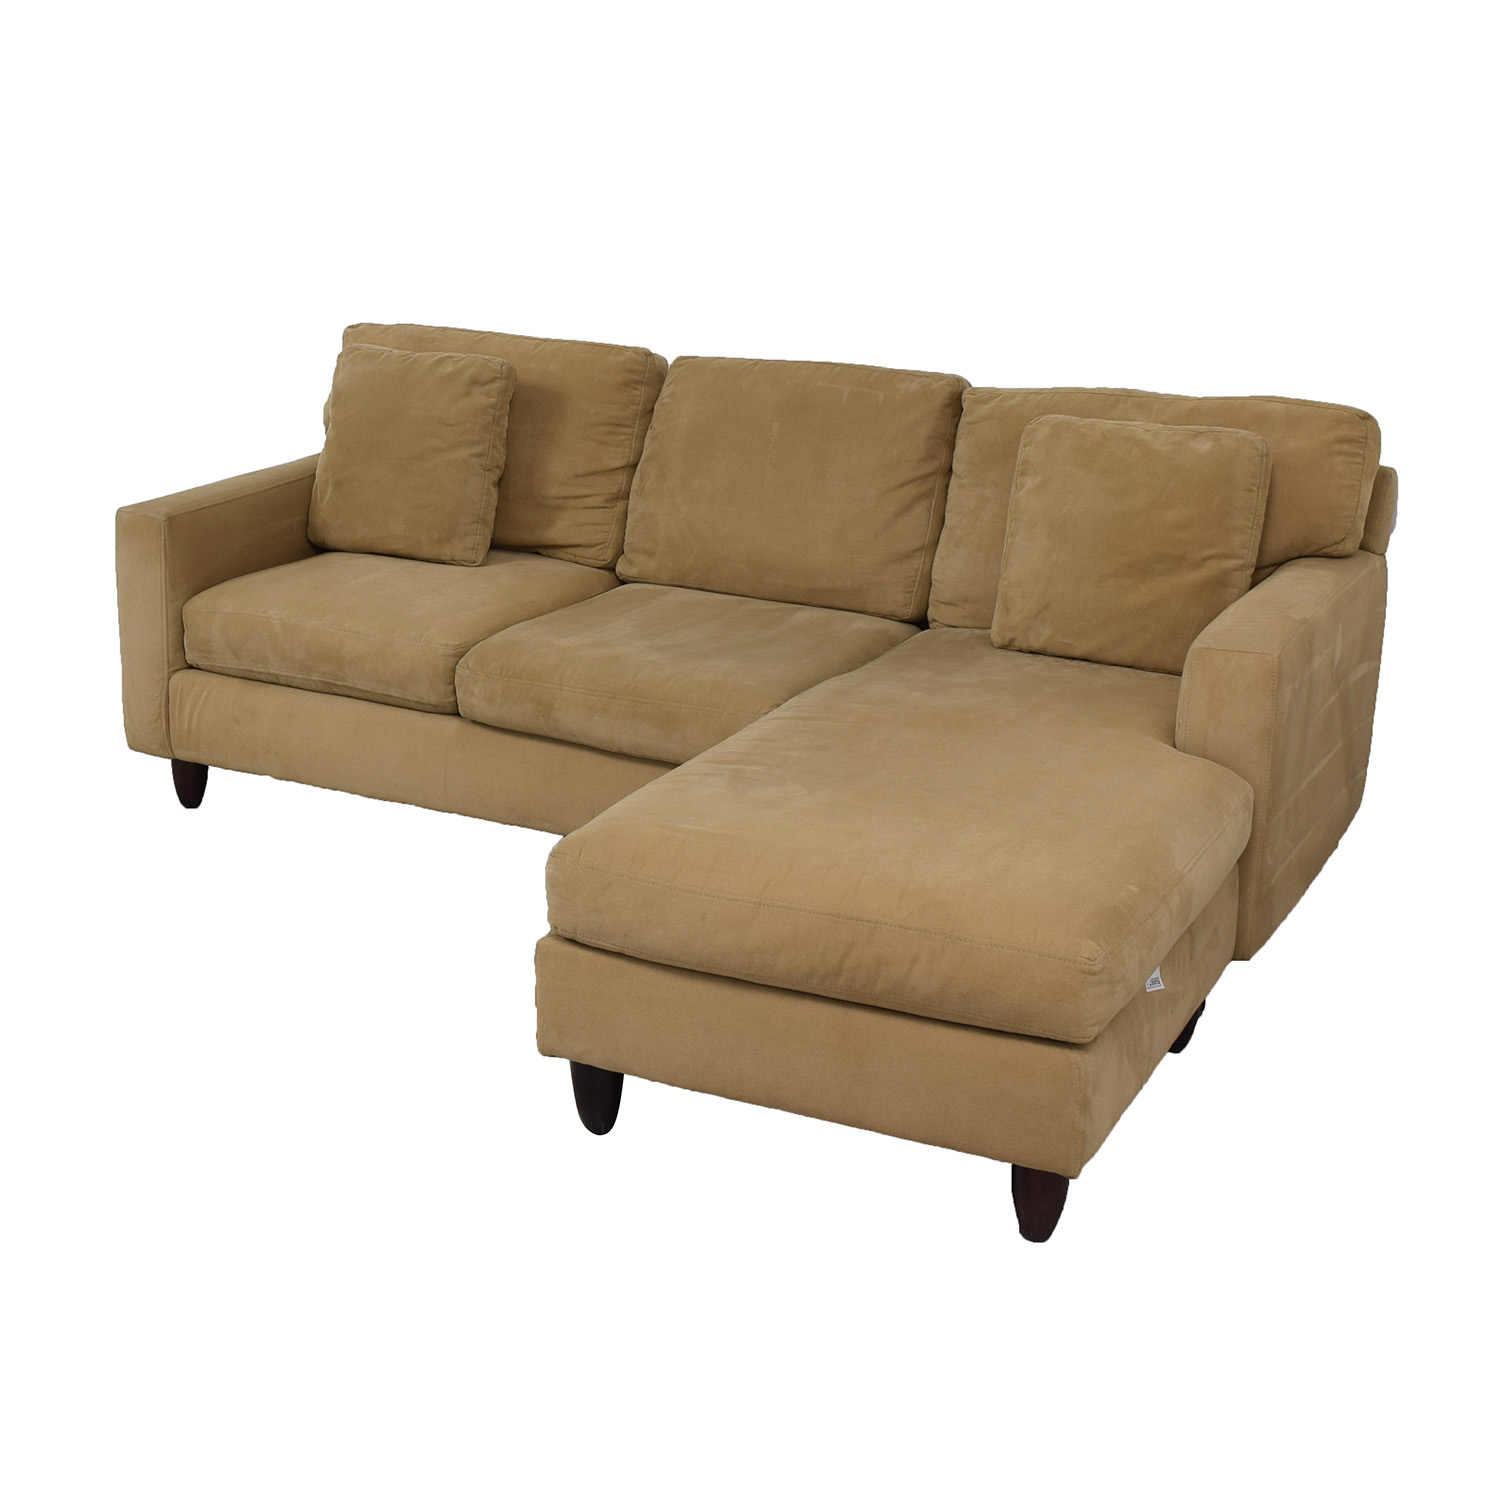 89 off max home max home tan sectional sofa sofas